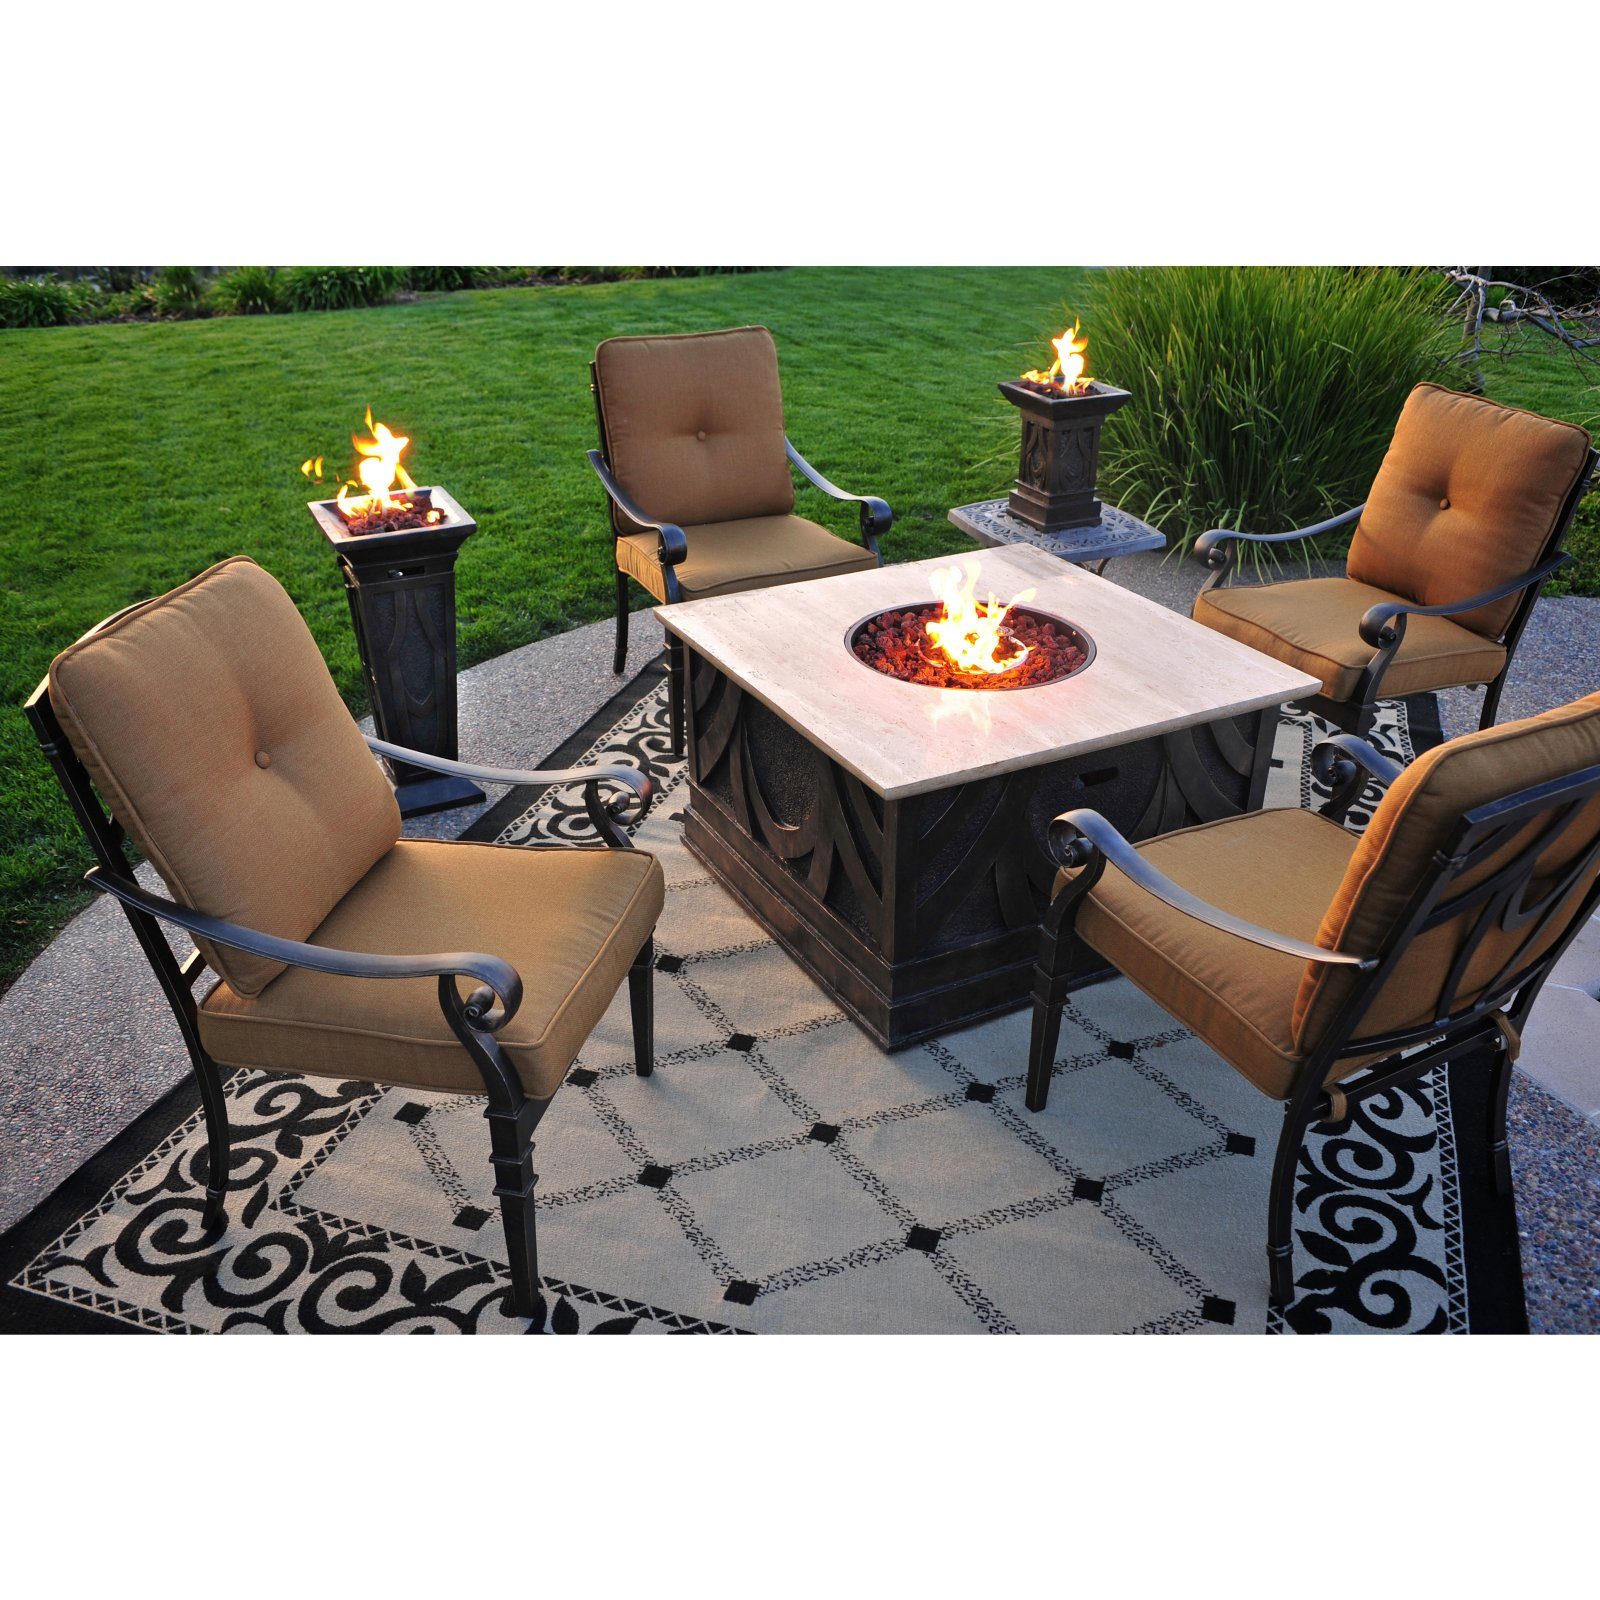 fire pit table living in style